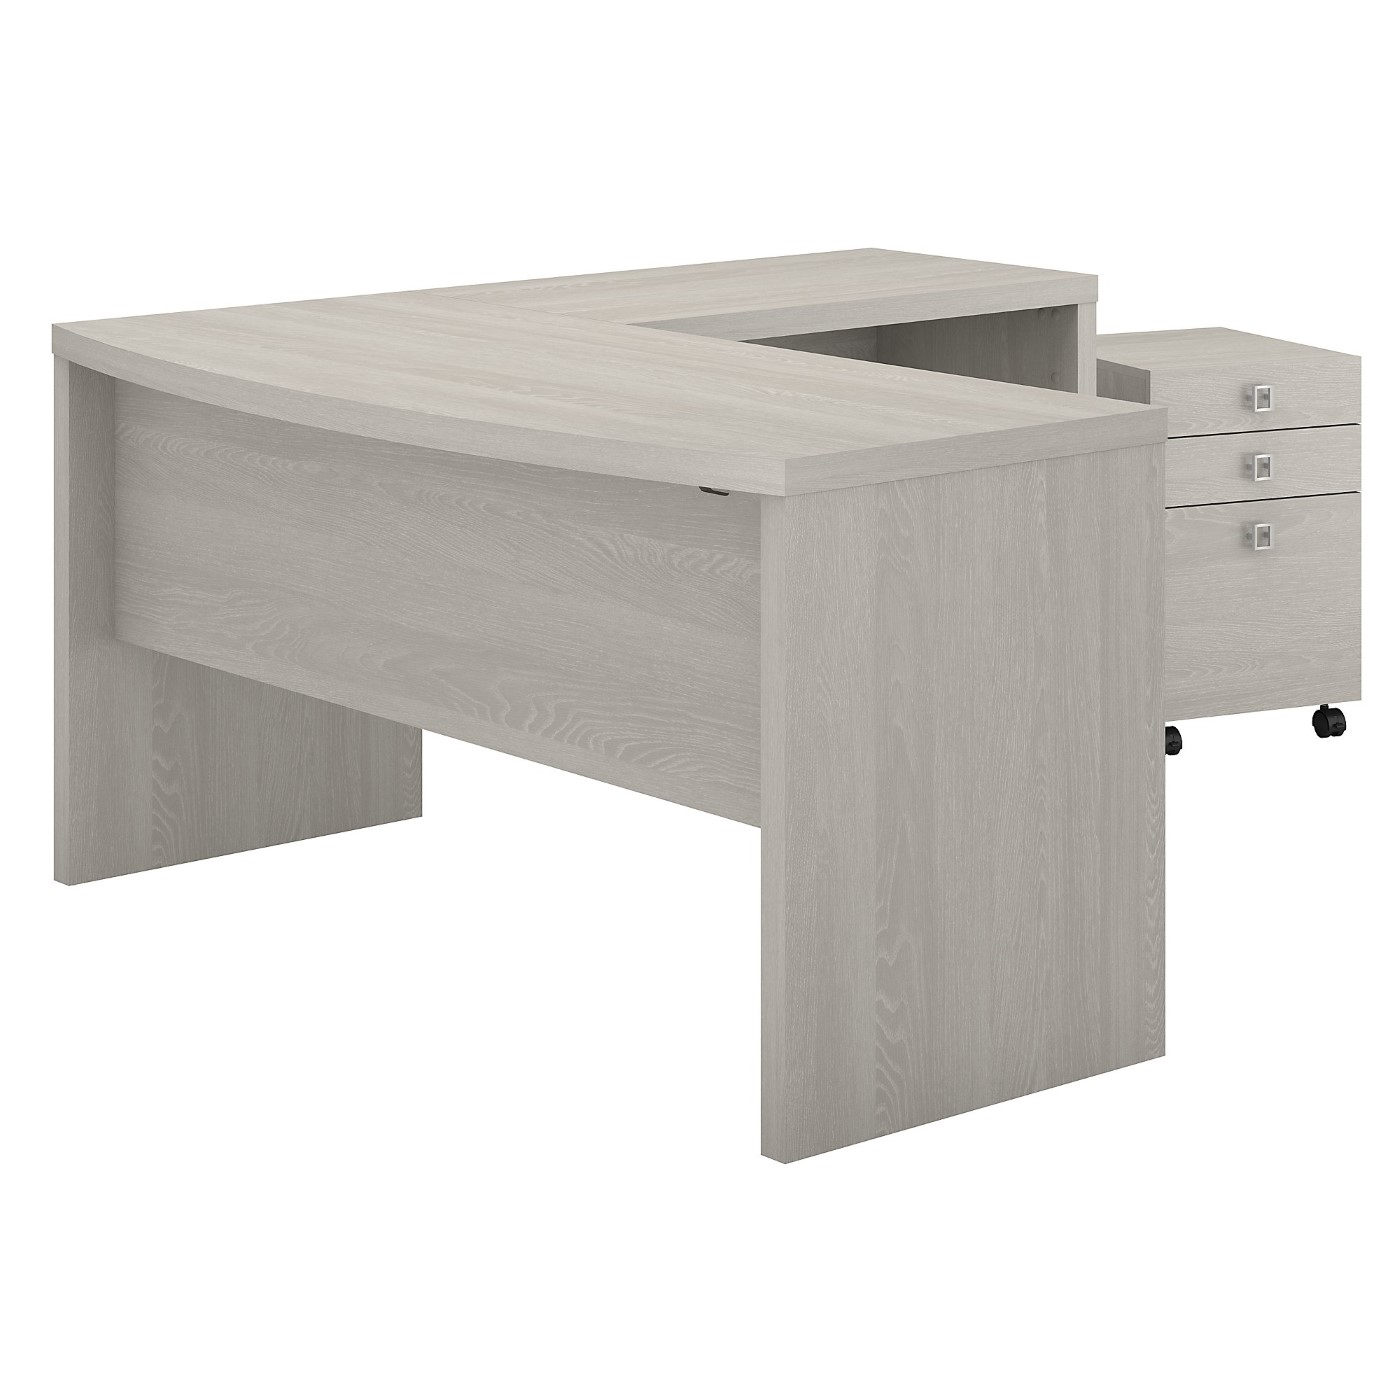 </b></font><b>The kathy ireland� Echo L Shaped Bow Front Desk with Mobile File Cabinet is Sustainable Eco Friendly Furniture. Includes Free Shipping! 30H x 72L x 72W</font>. <p>RATING:&#11088;&#11088;&#11088;&#11088;&#11088;</b></font></b>